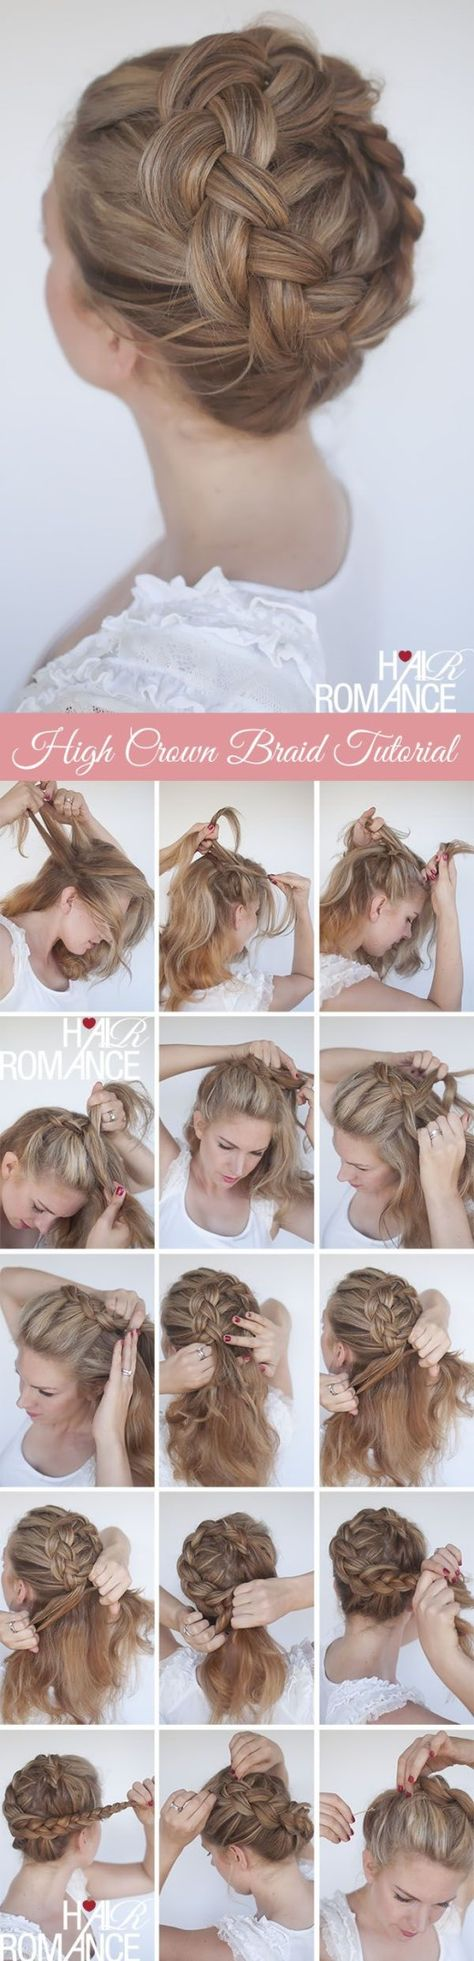 Now that I've gotten my French braiding skills mastered I've been hella lovin' different crown braid styles & Practice makes perfect  12 Crown Braided Hairstyles